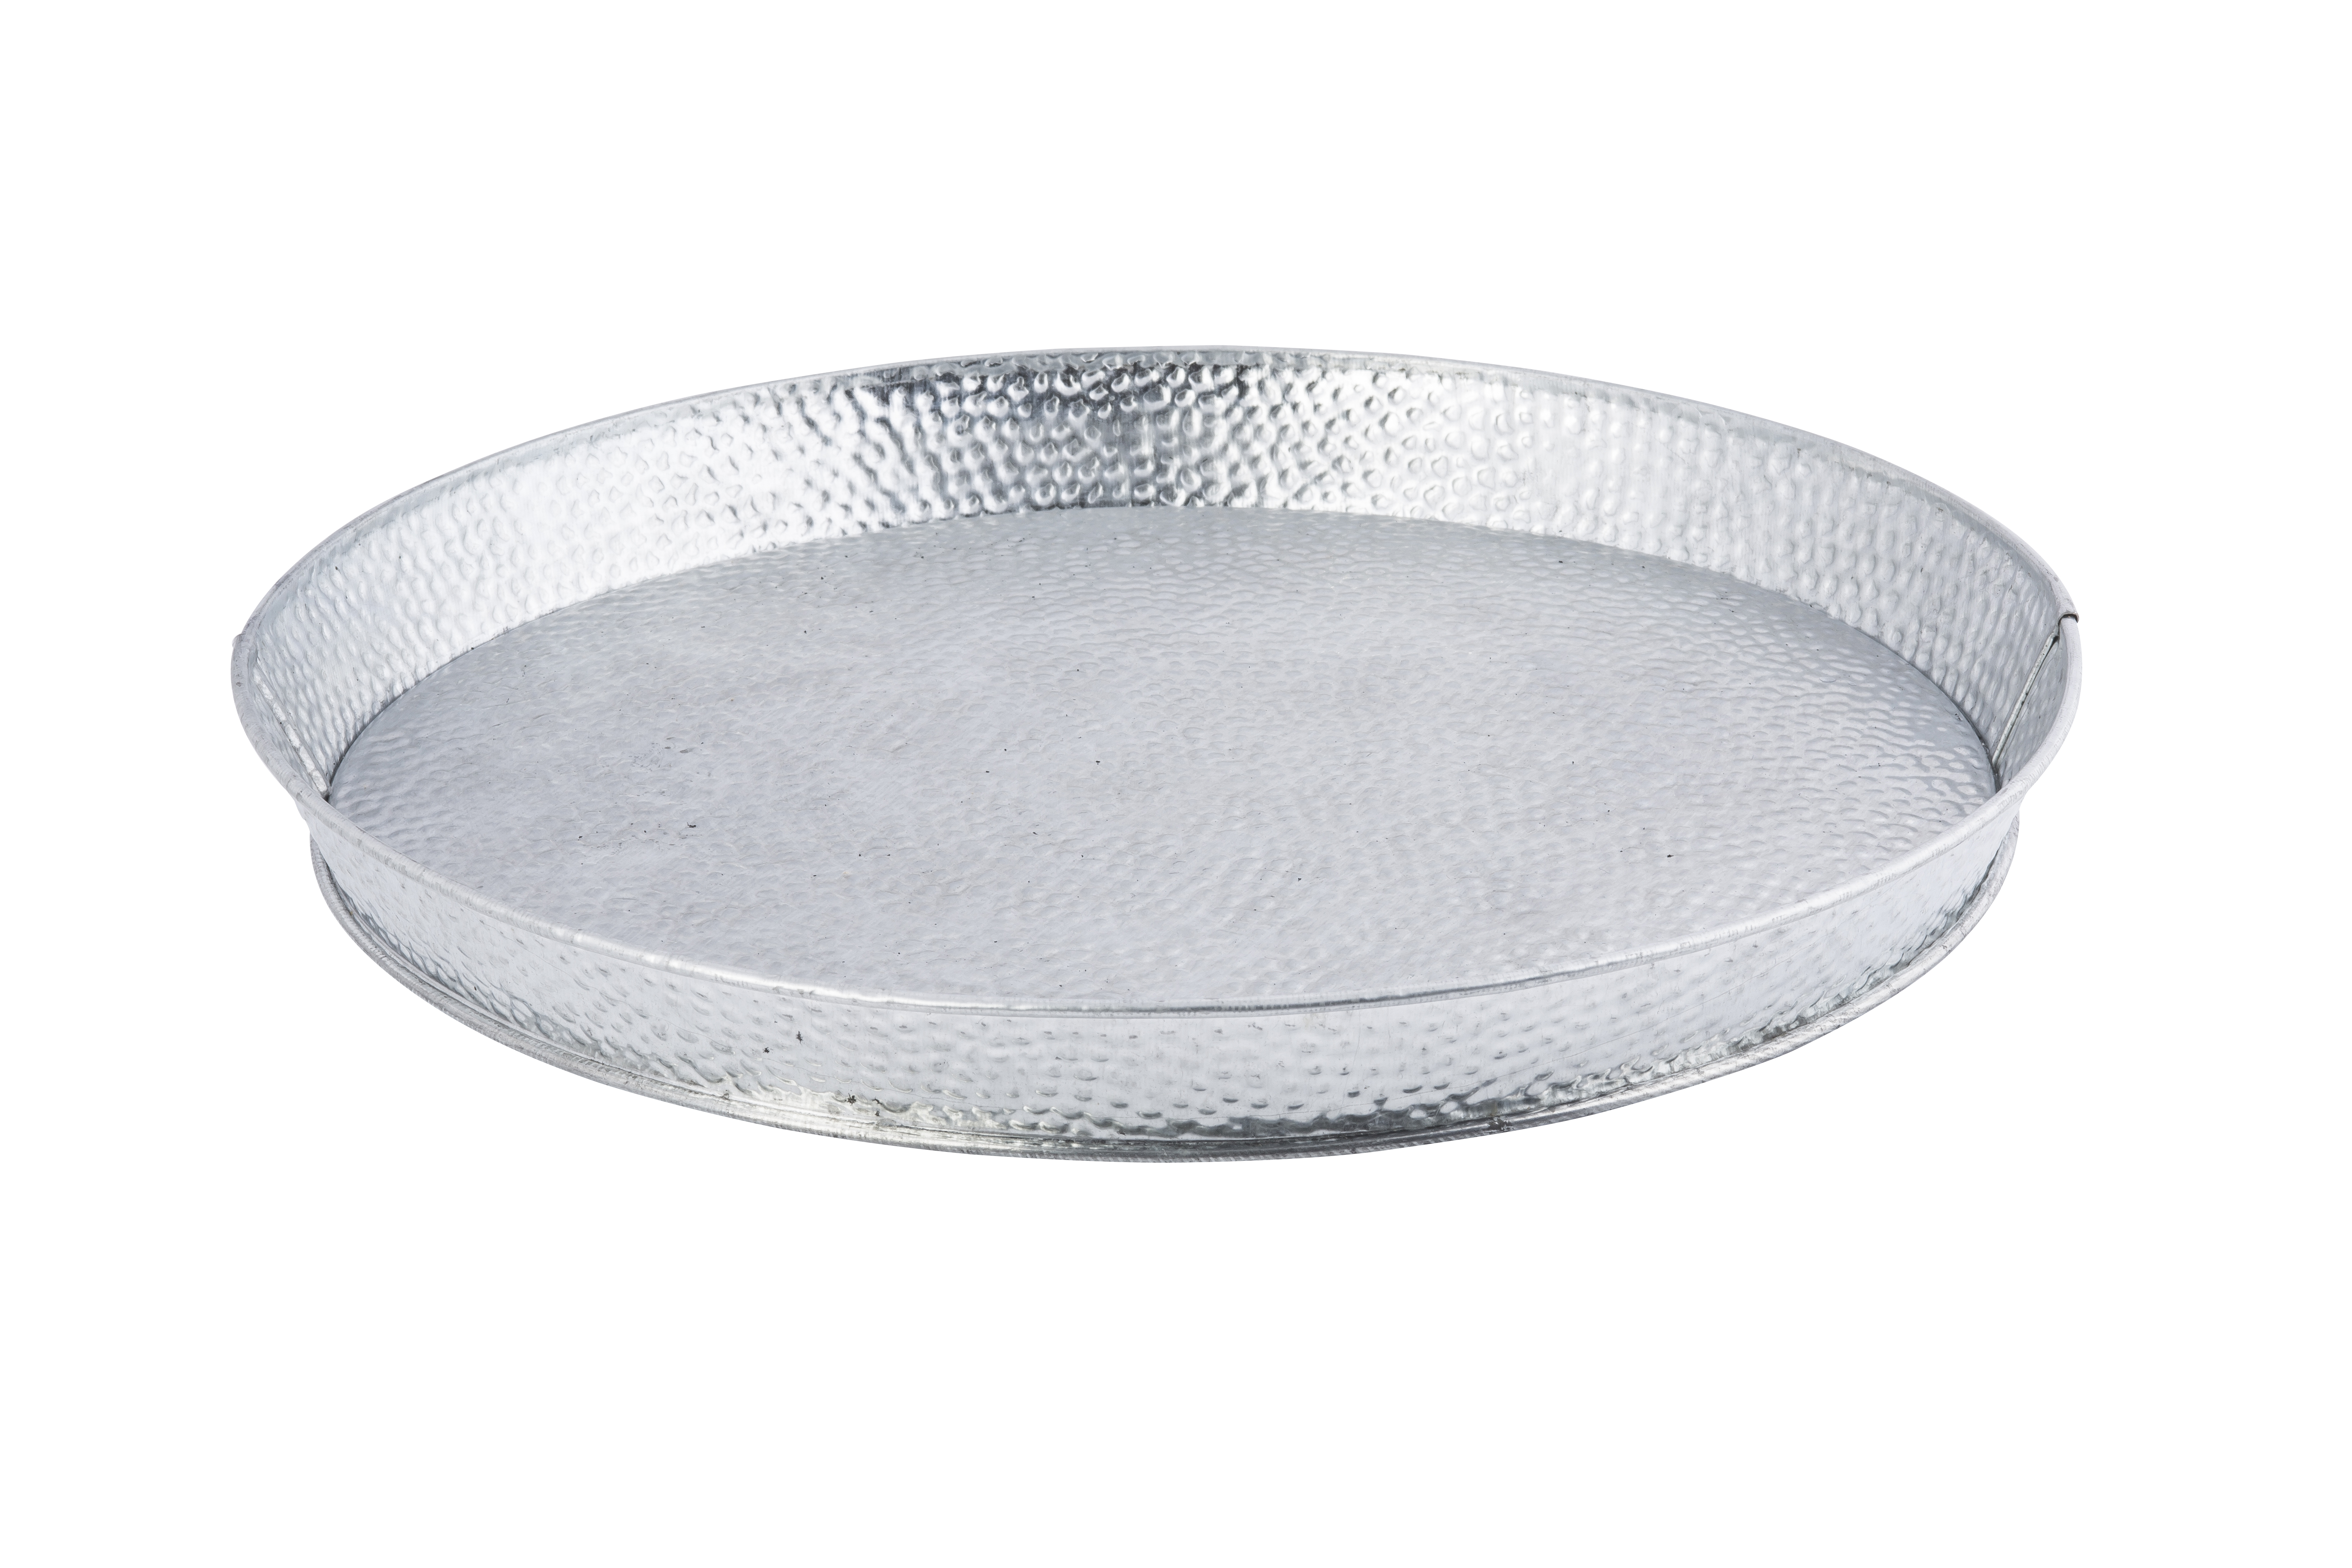 TableCraft Products GP12 galvanized collection